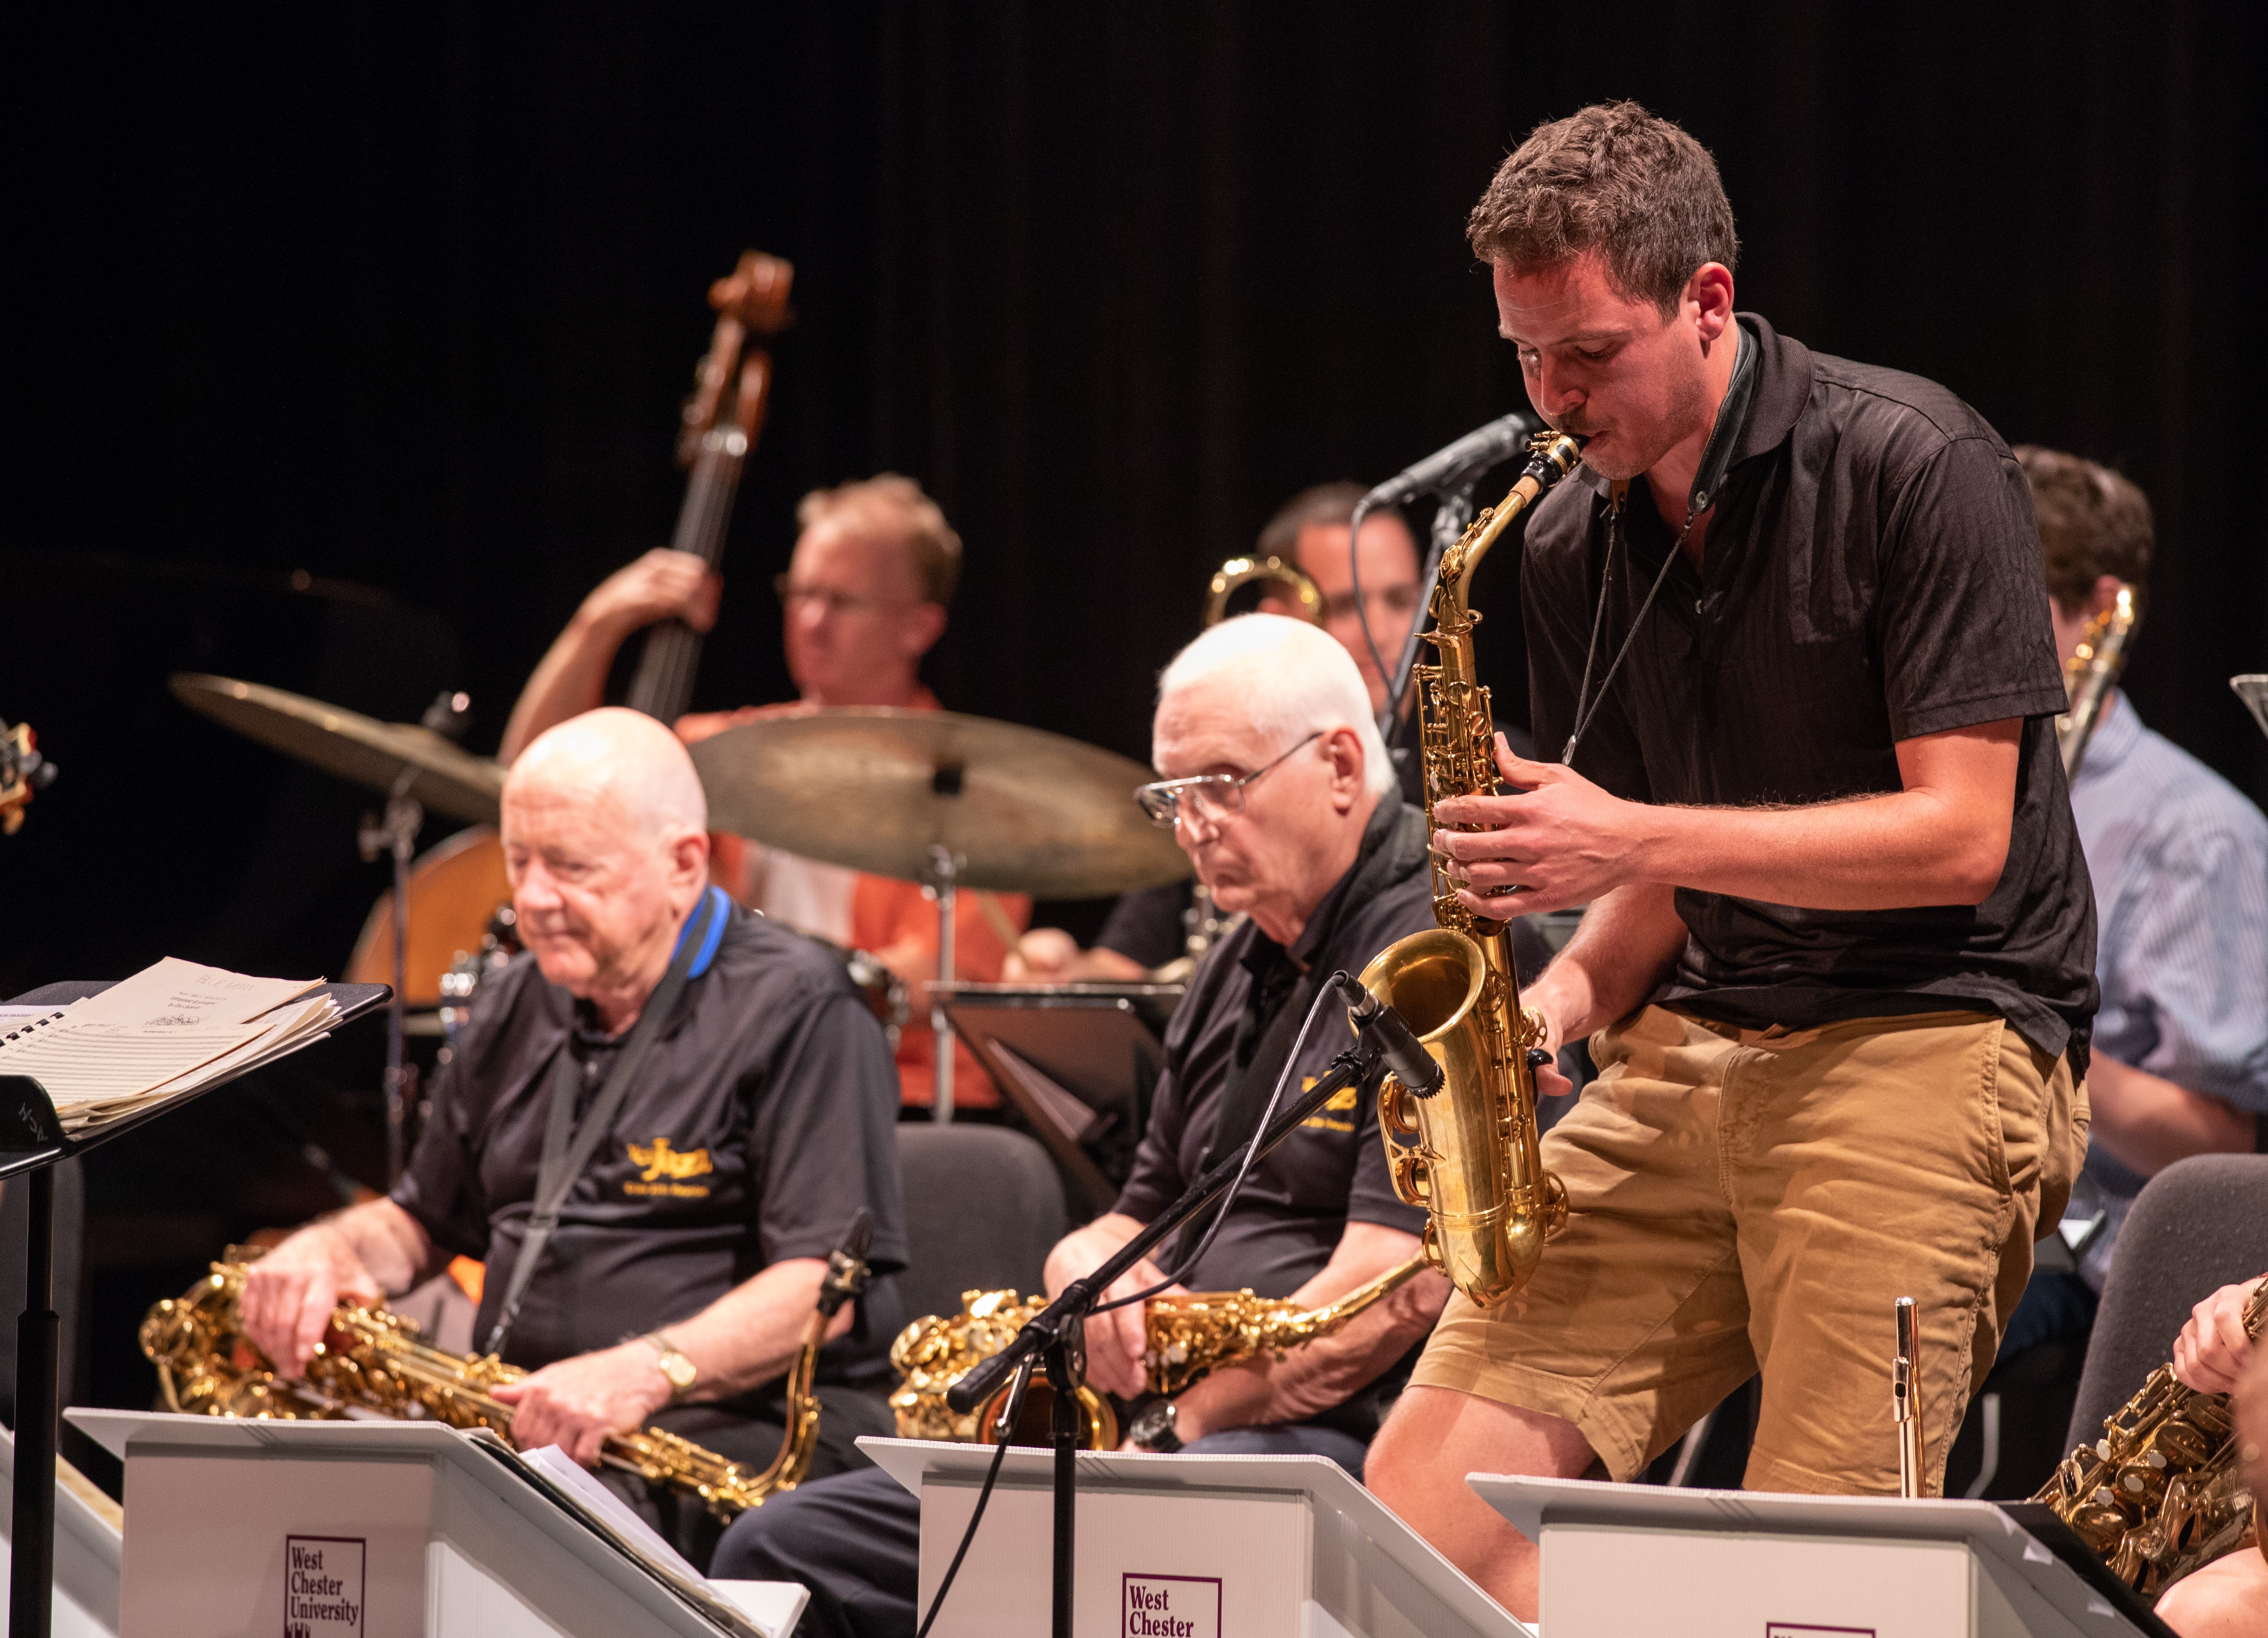 Alumni of WCU's Premier Jazz Ensemble to Reunite, Perform Free Concert on July 18